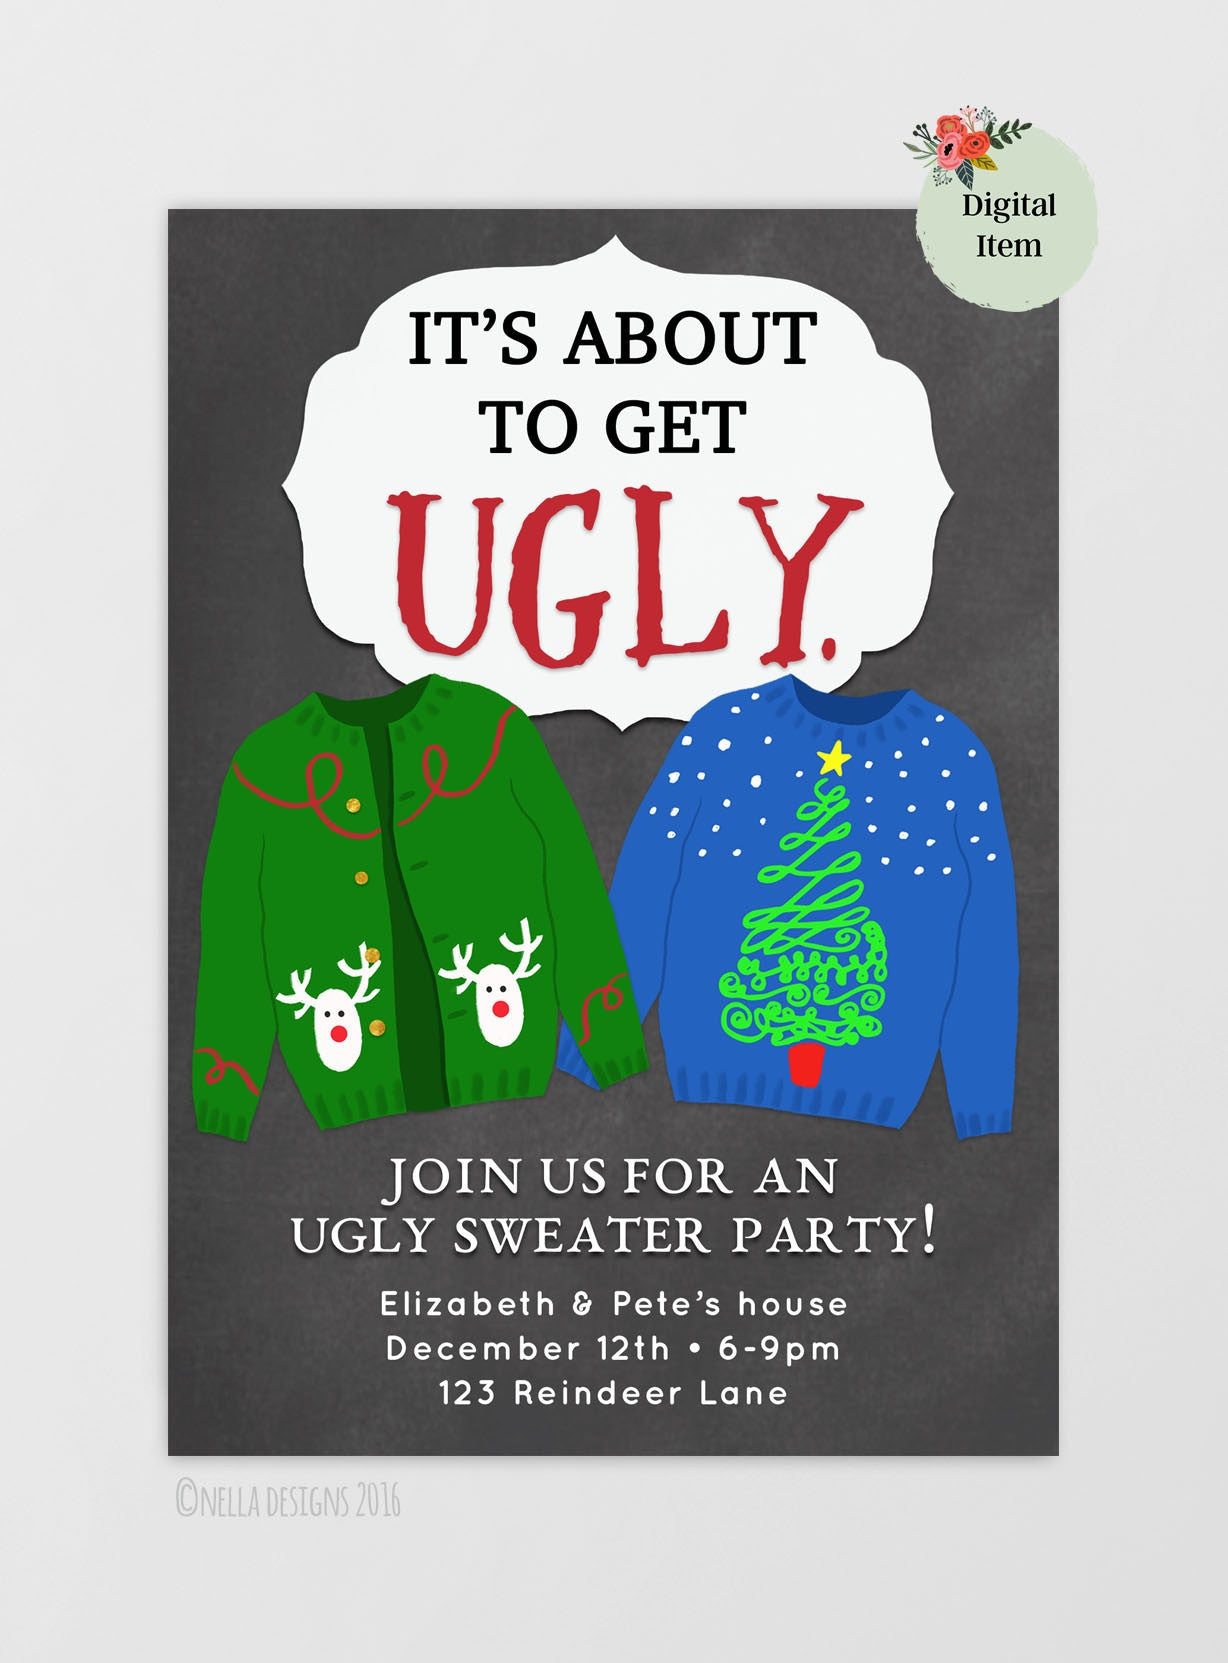 Ugly sweater party ugly christmas sweater party printable ugly sweater party ugly christmas sweater party printable invitation stopboris Choice Image